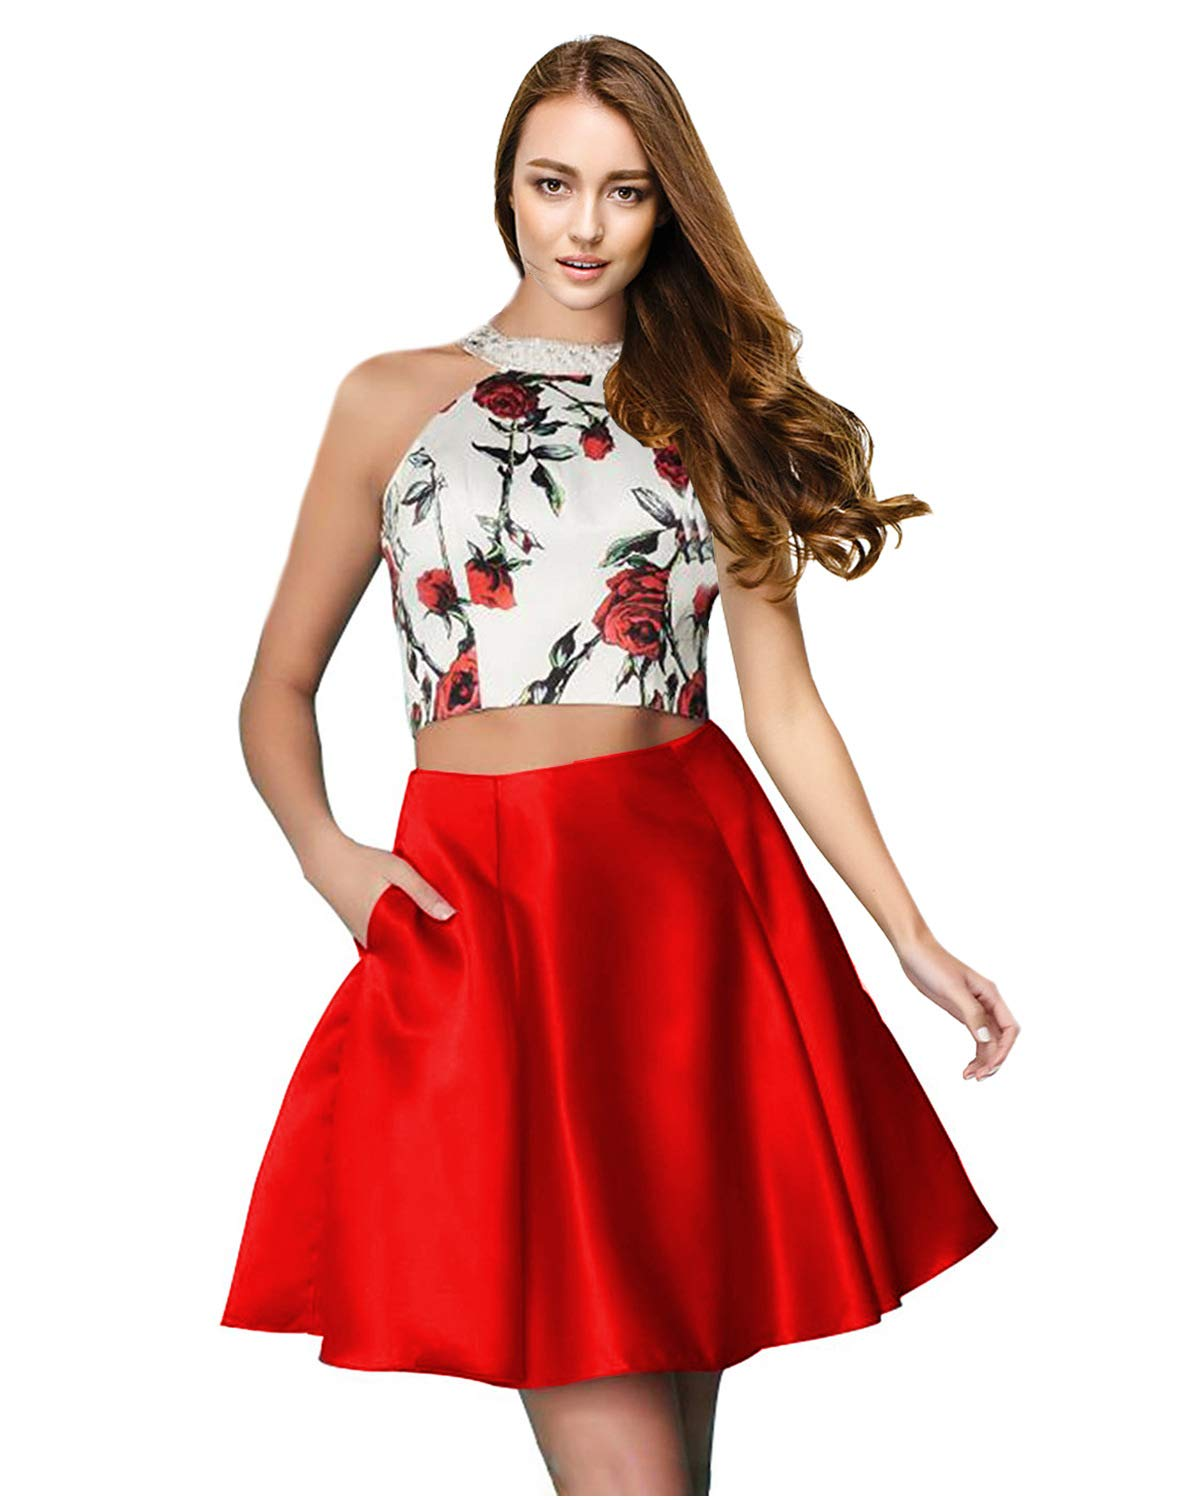 Ever-Beauty Juniors Halter 2 Piece Homecoming Dress Short Floral Sleeveless  Prom Party Dress Pockets Red Plus Size 18